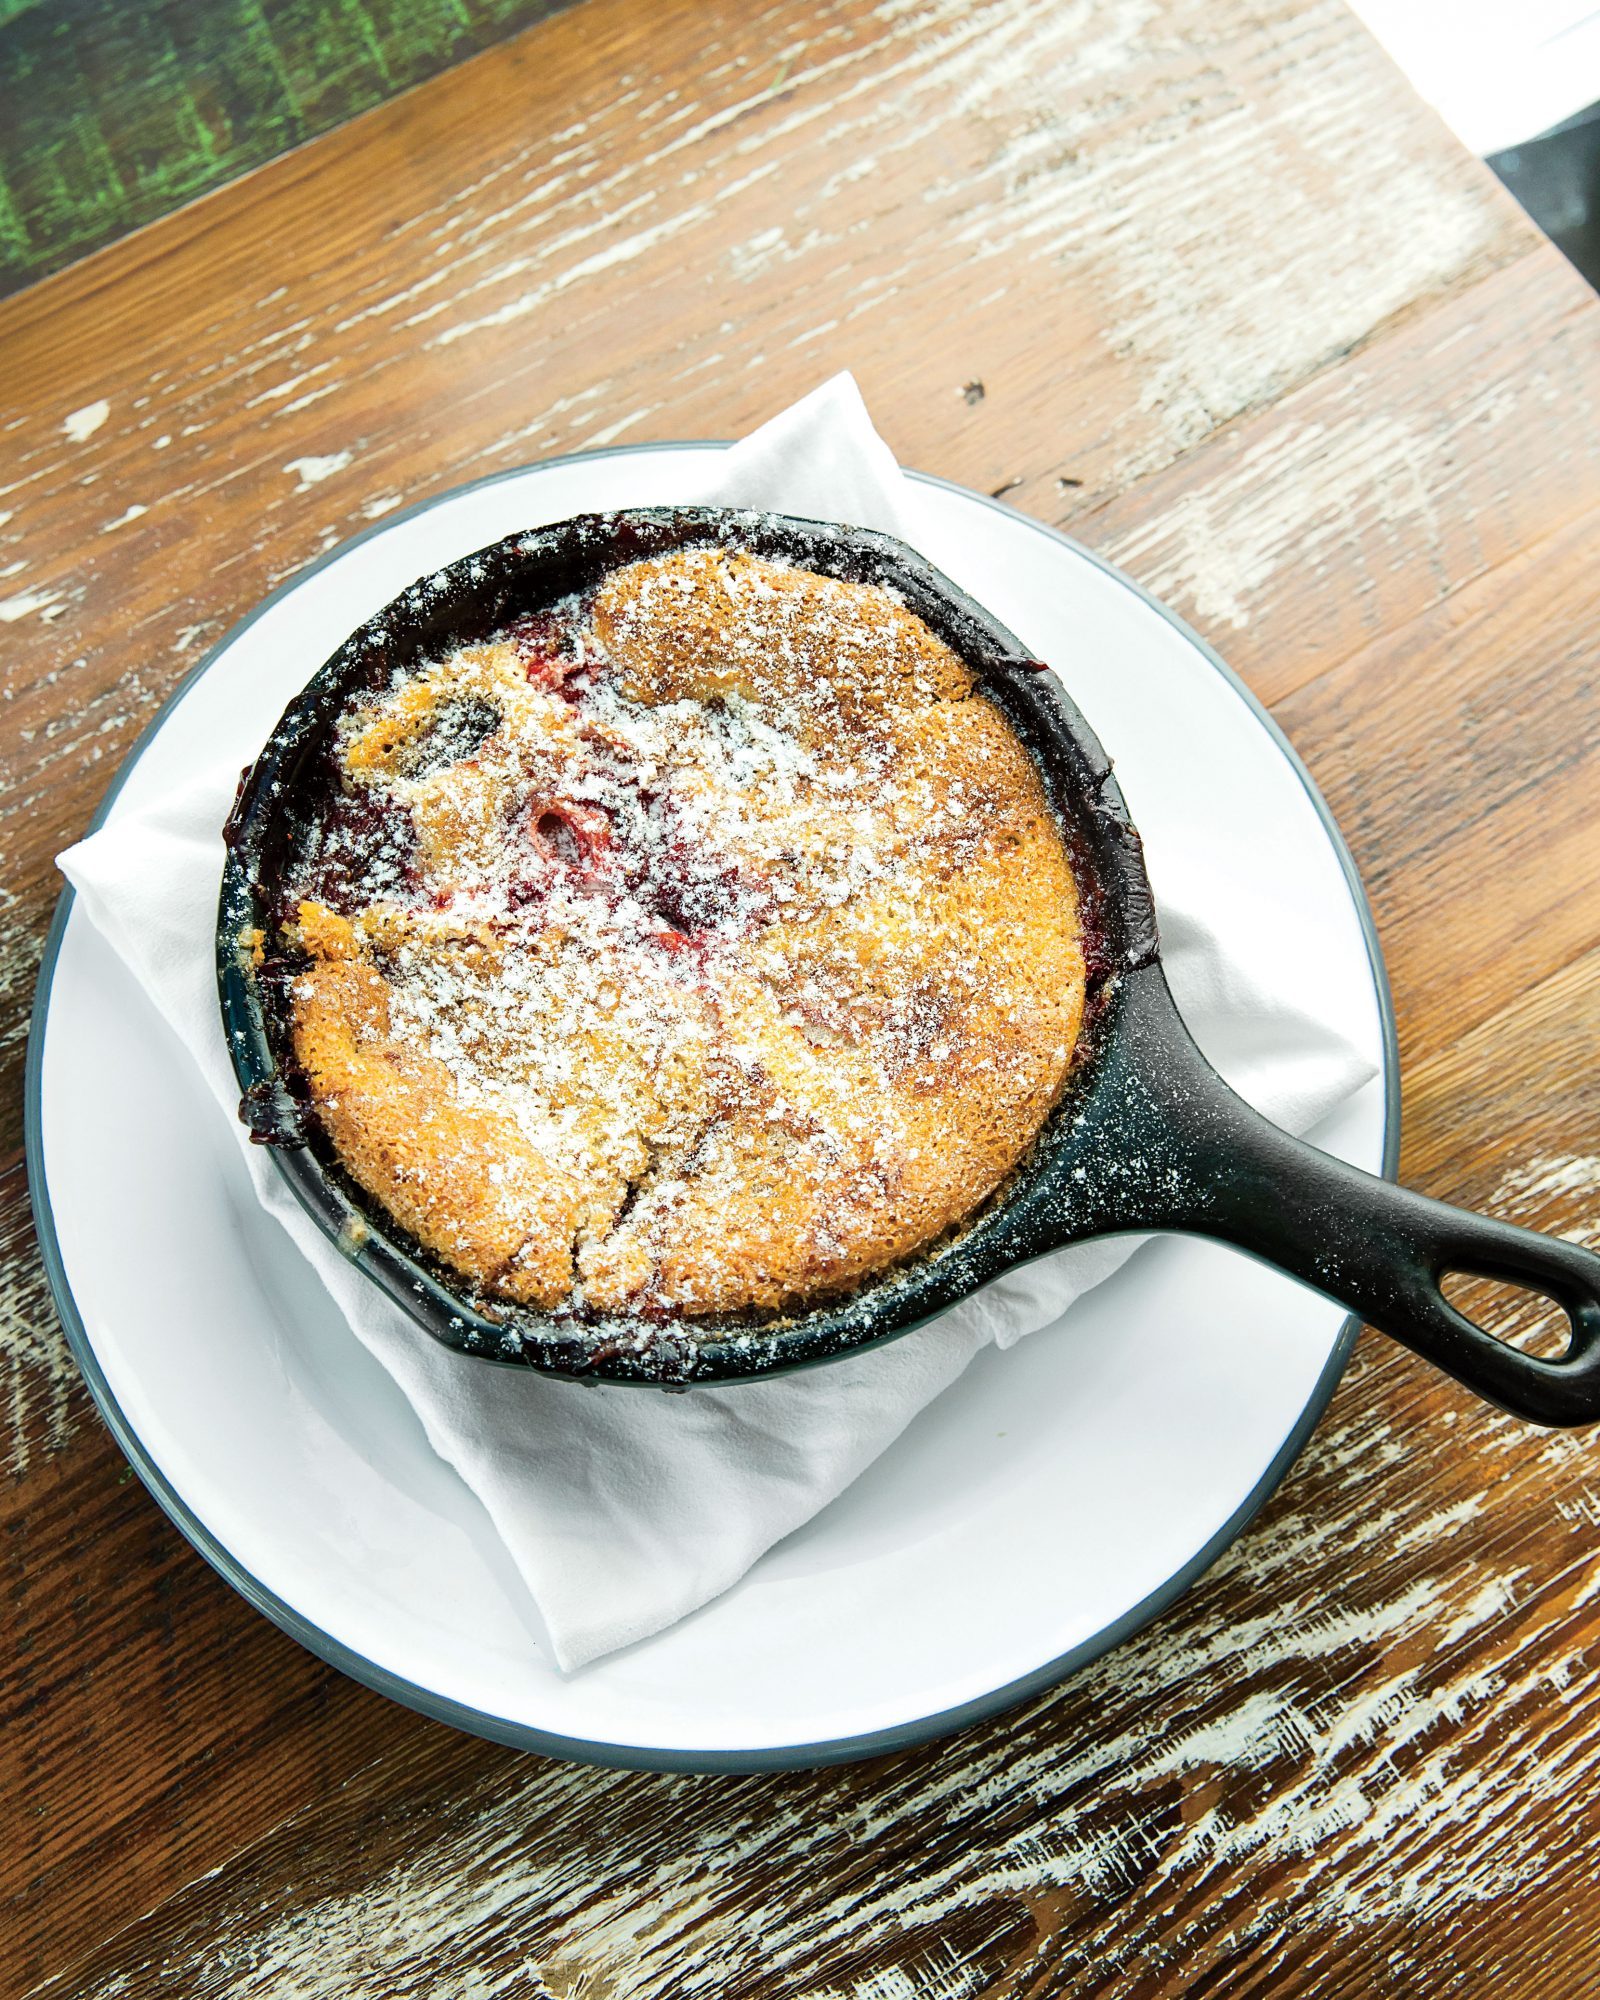 Fields' Blackberry-and-Bourbon Cobbler